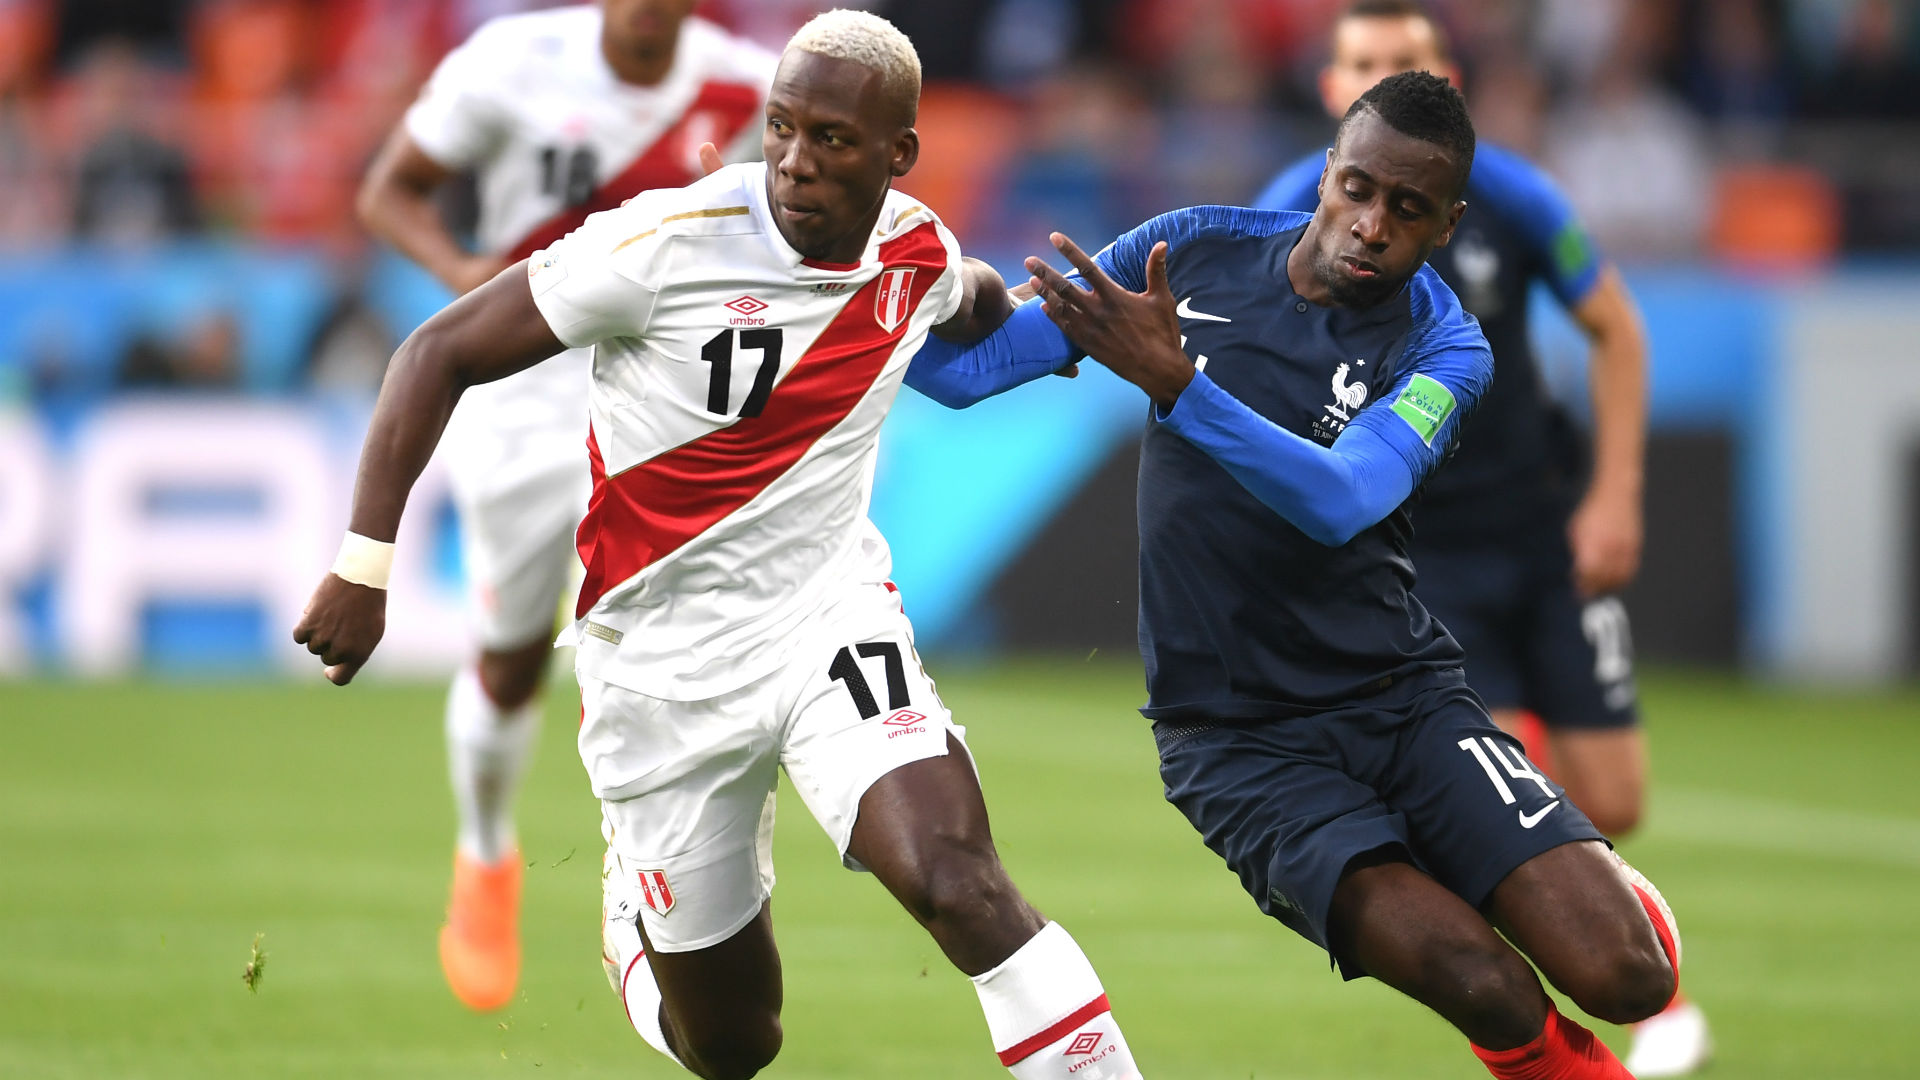 Blaise Matuidi Luis Advincula France Peru World Cup 2018 21062018